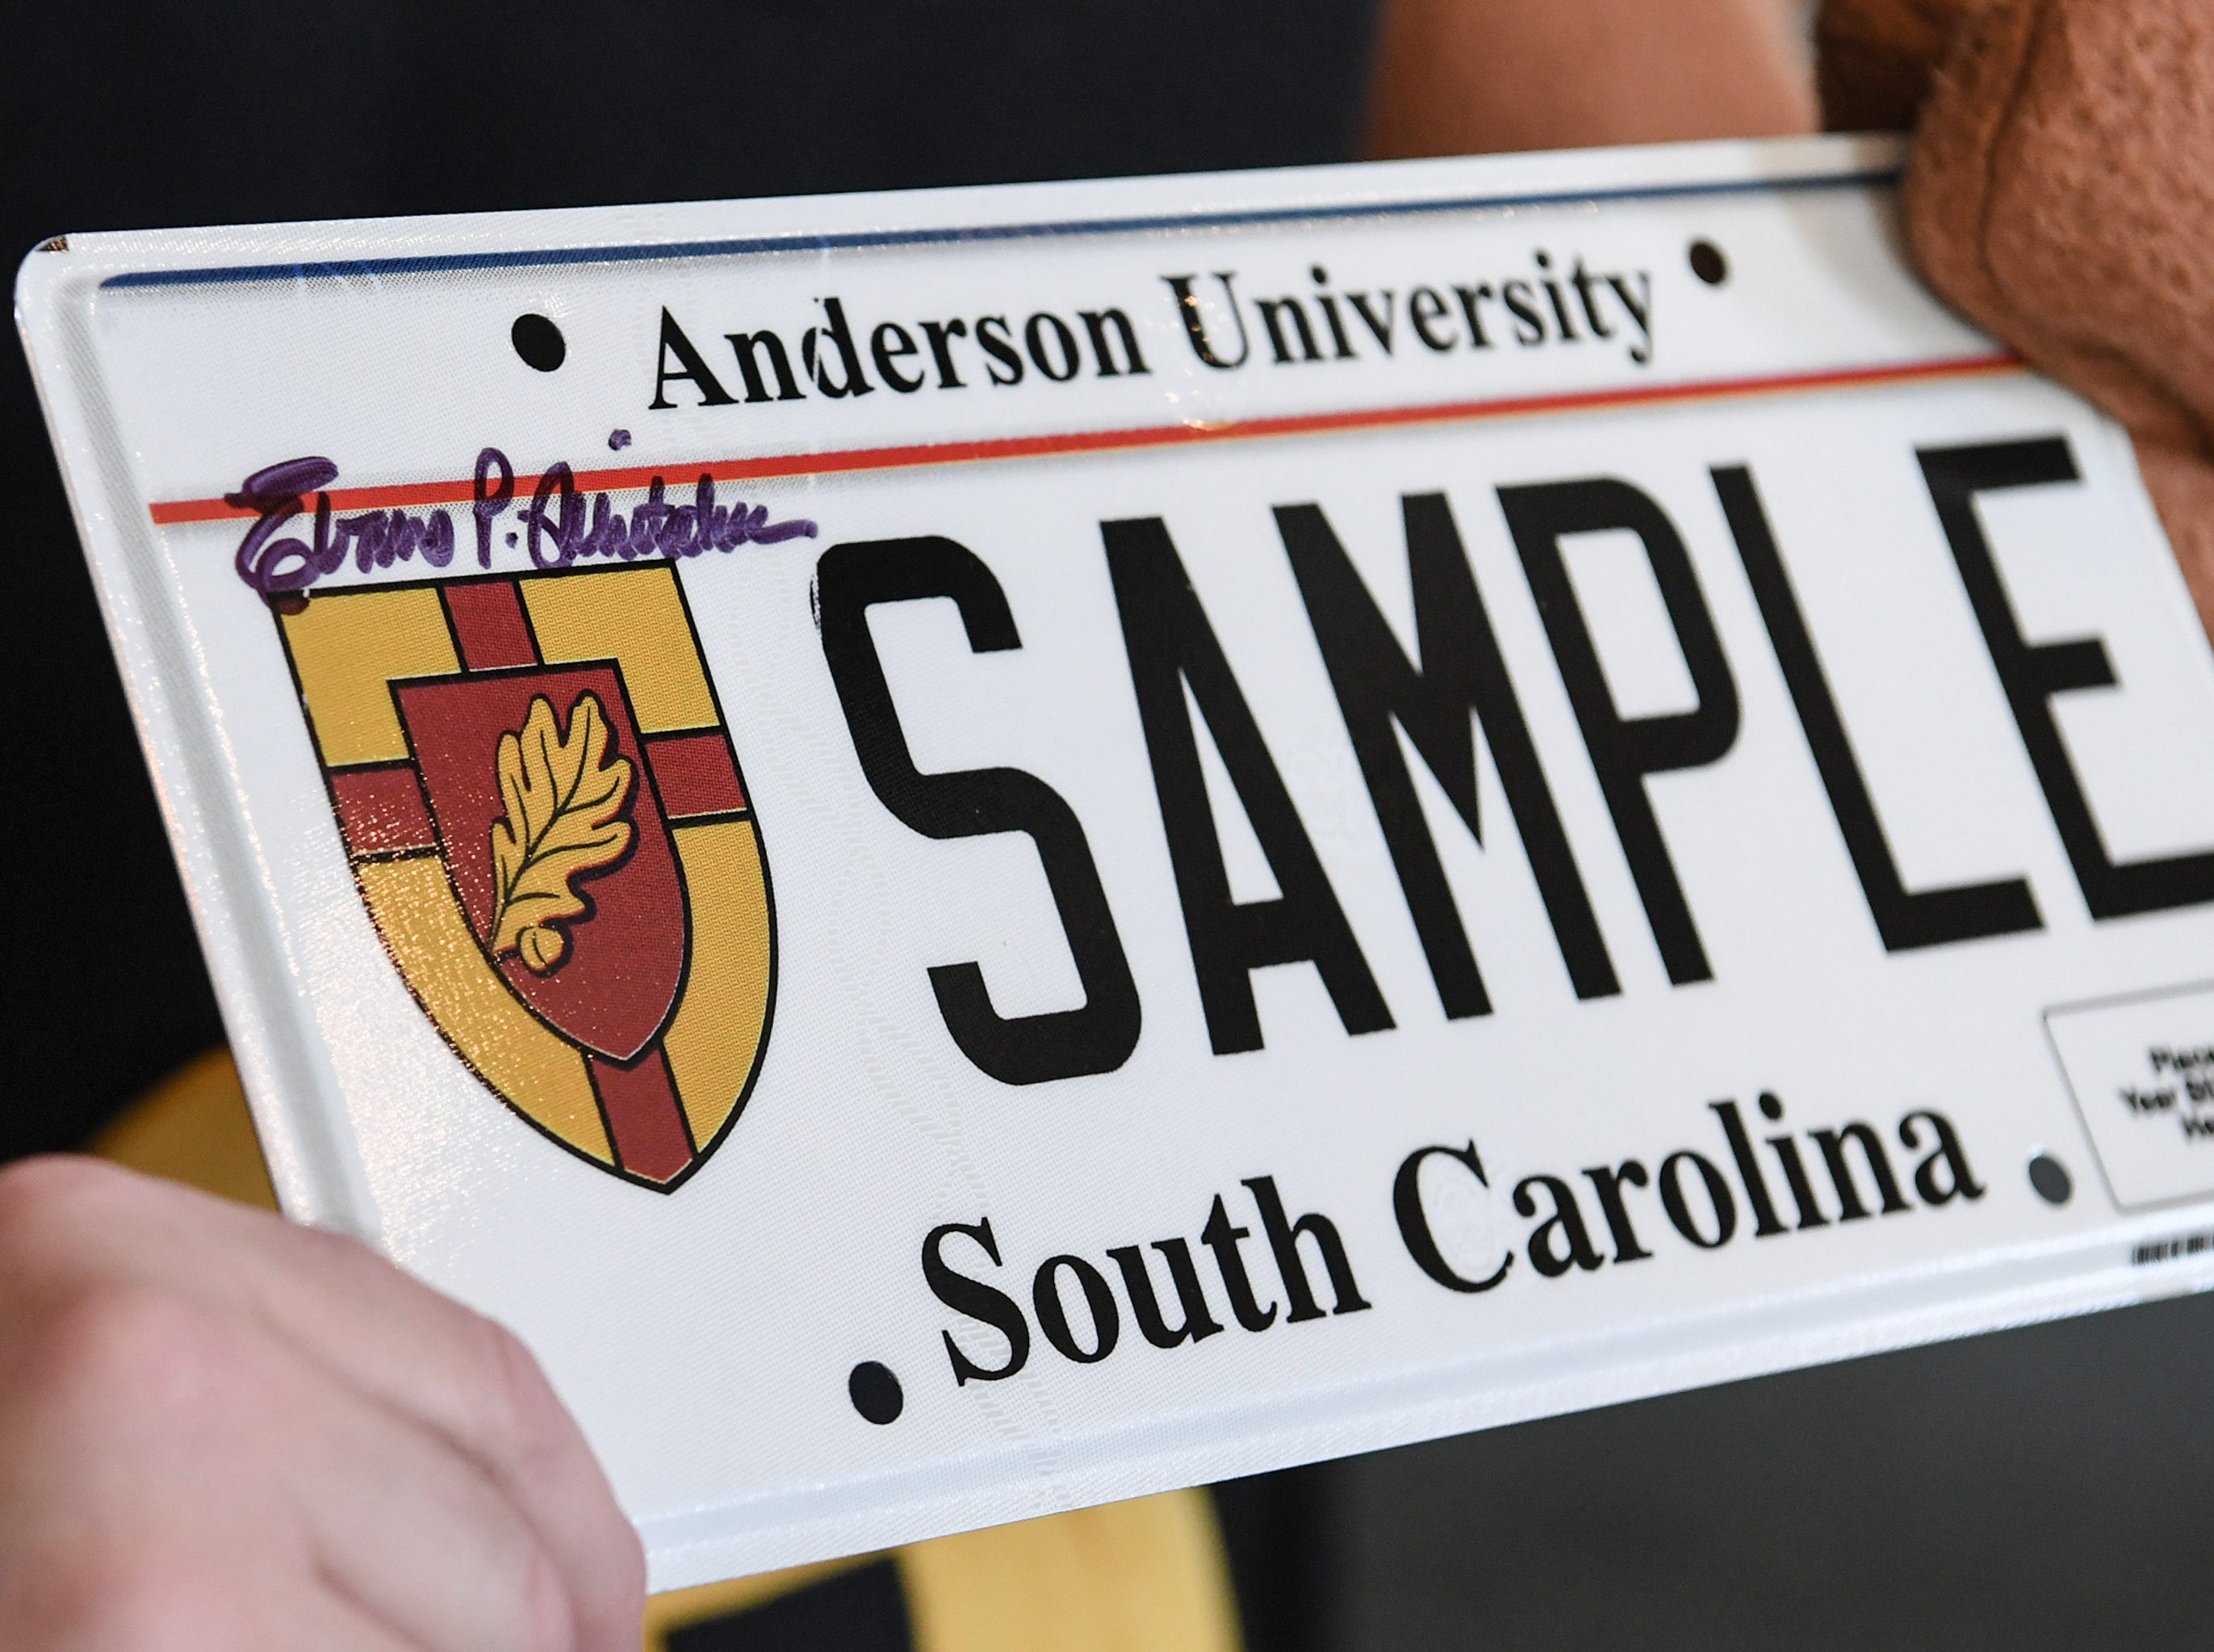 President Evans Whitaker of Anderson University autographs a new school personalized license plate for a display, during a press conference at the campus administration building in Anderson Friday morning. The University plate, along with Clemson University and the University of South Carolina, are the only college or university plates available to personalize, said Perkins-Brown. The Anderson University plates can be applied for starting Monday, January 28, 2019 in person, not online, for $100 and an added fee if personalizing.